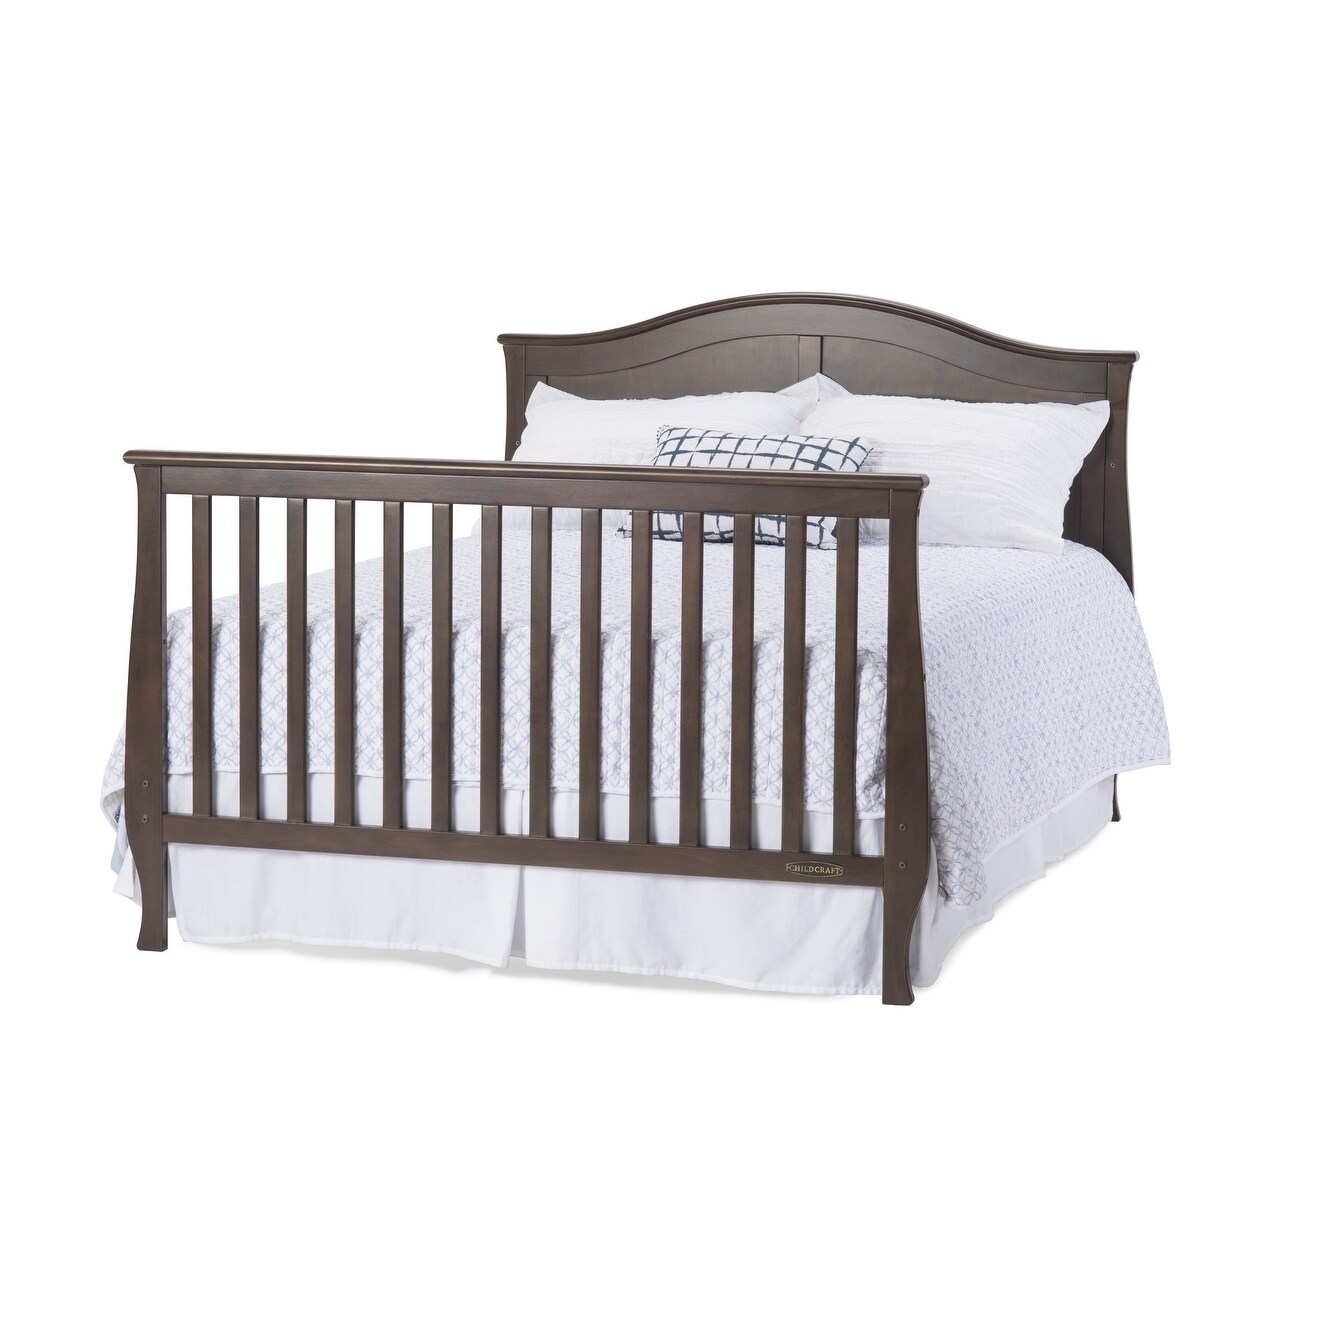 garden free product cribs home camden crib bfdc craft today in child overstock convertible shipping